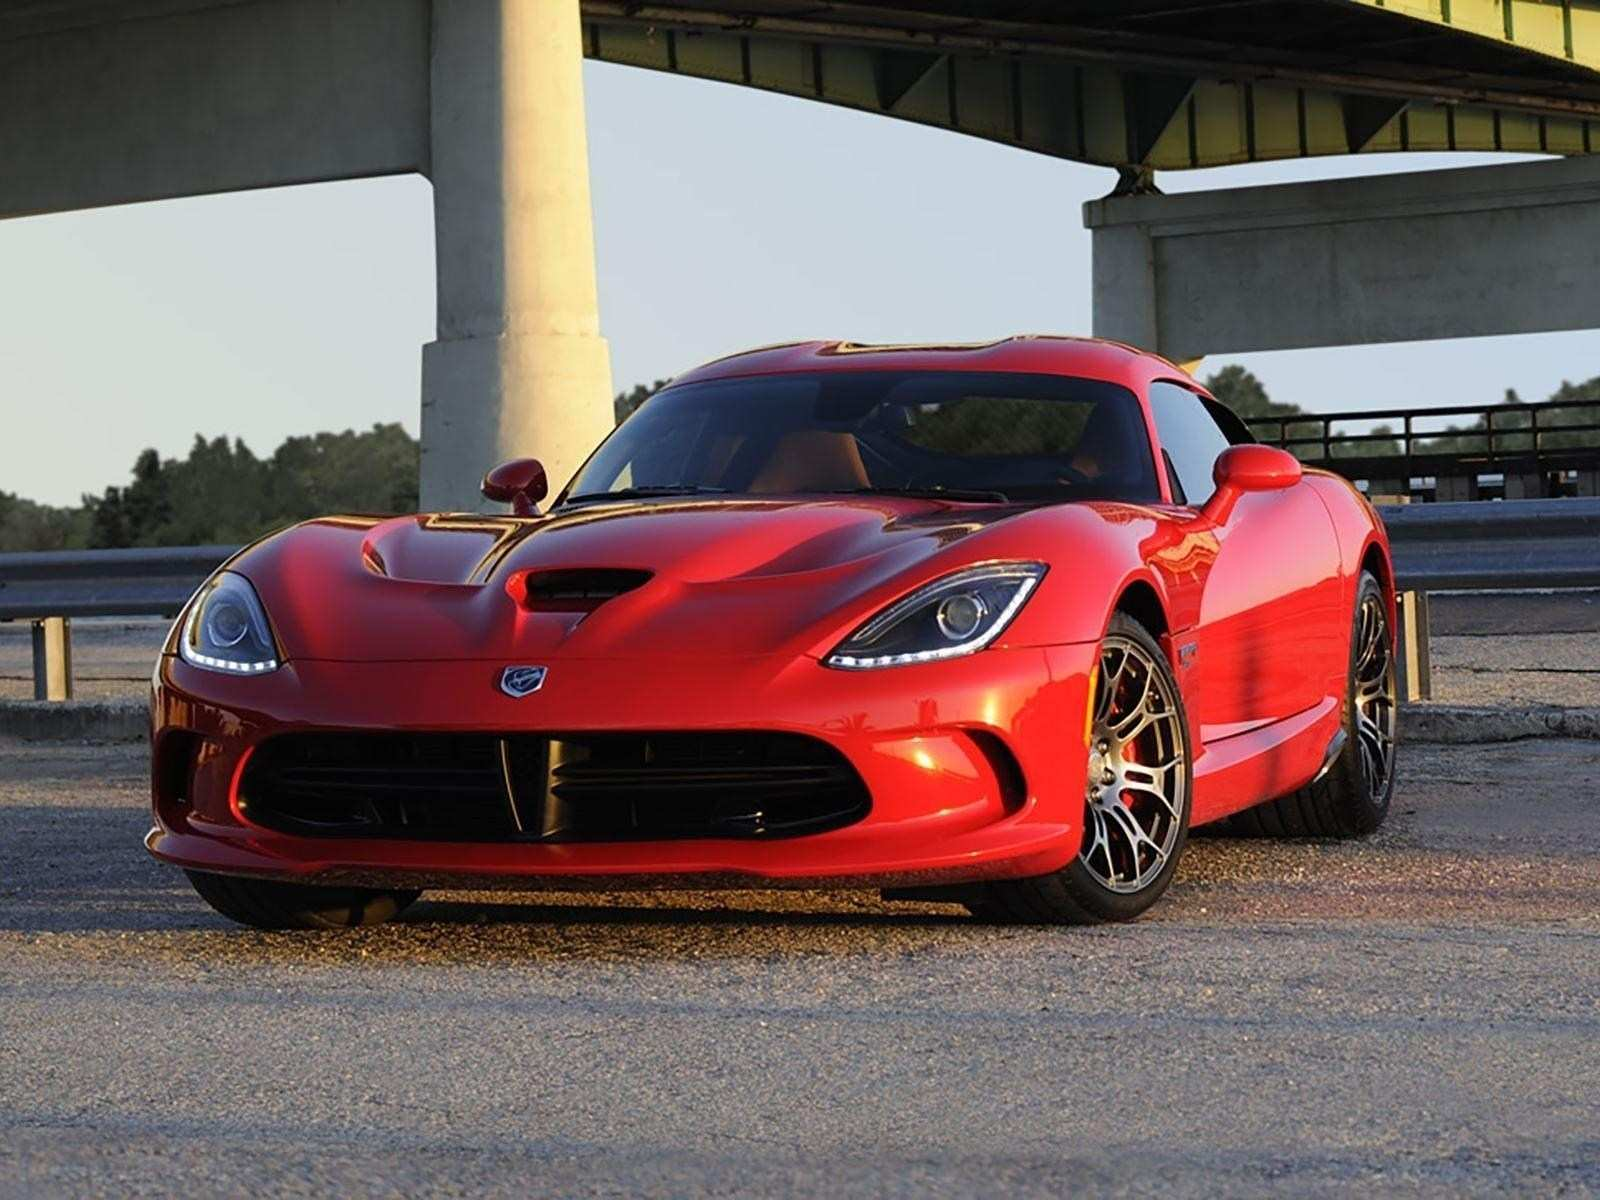 38 Gallery of 2019 Dodge Viper Specs Concept with 2019 Dodge Viper Specs